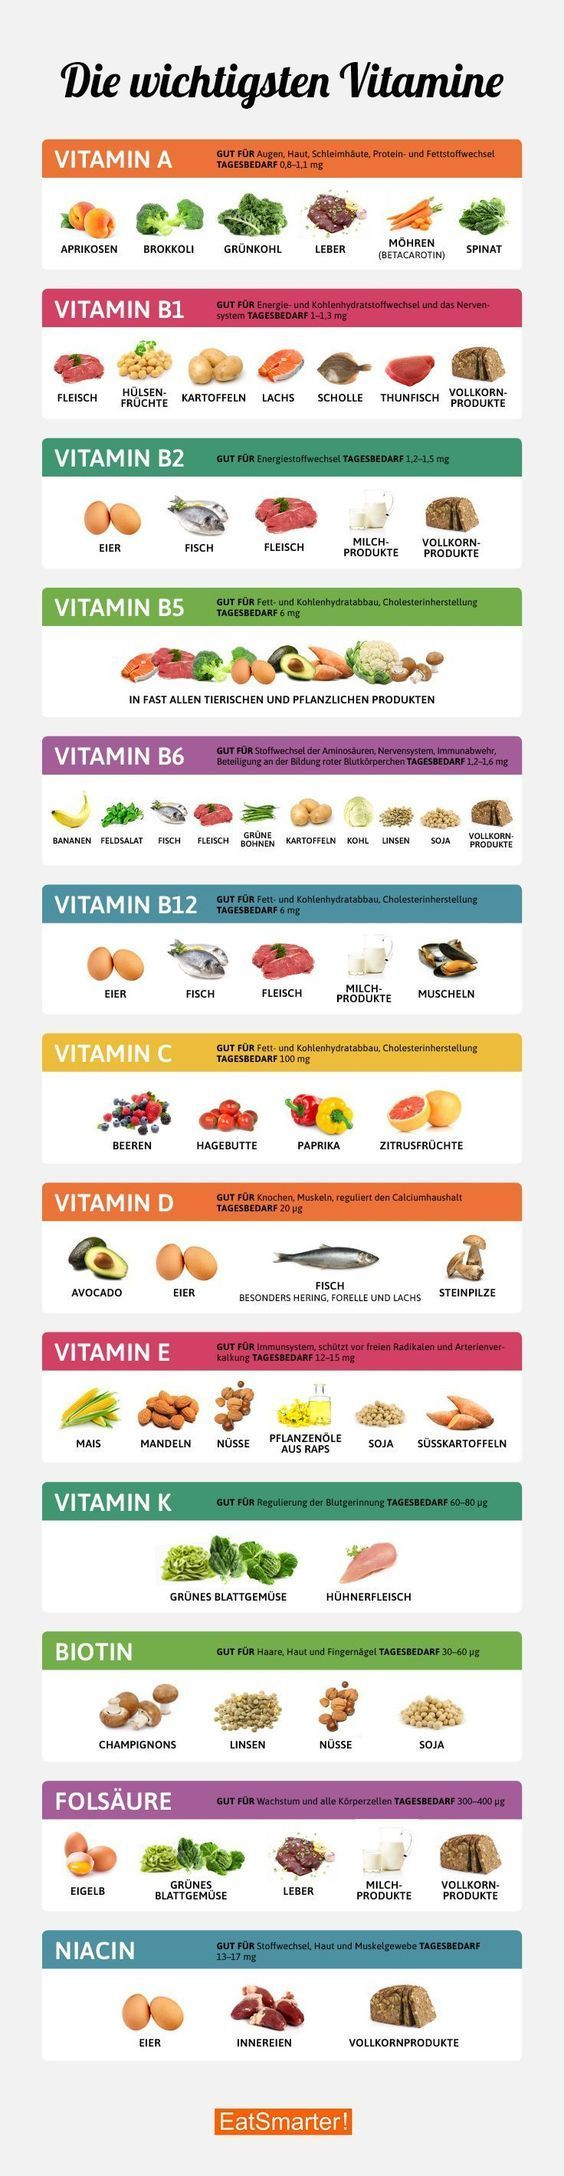 The most important vitamins at a glance -  Most important vitamins  - #EasyFitness #FemaleFitness #f...